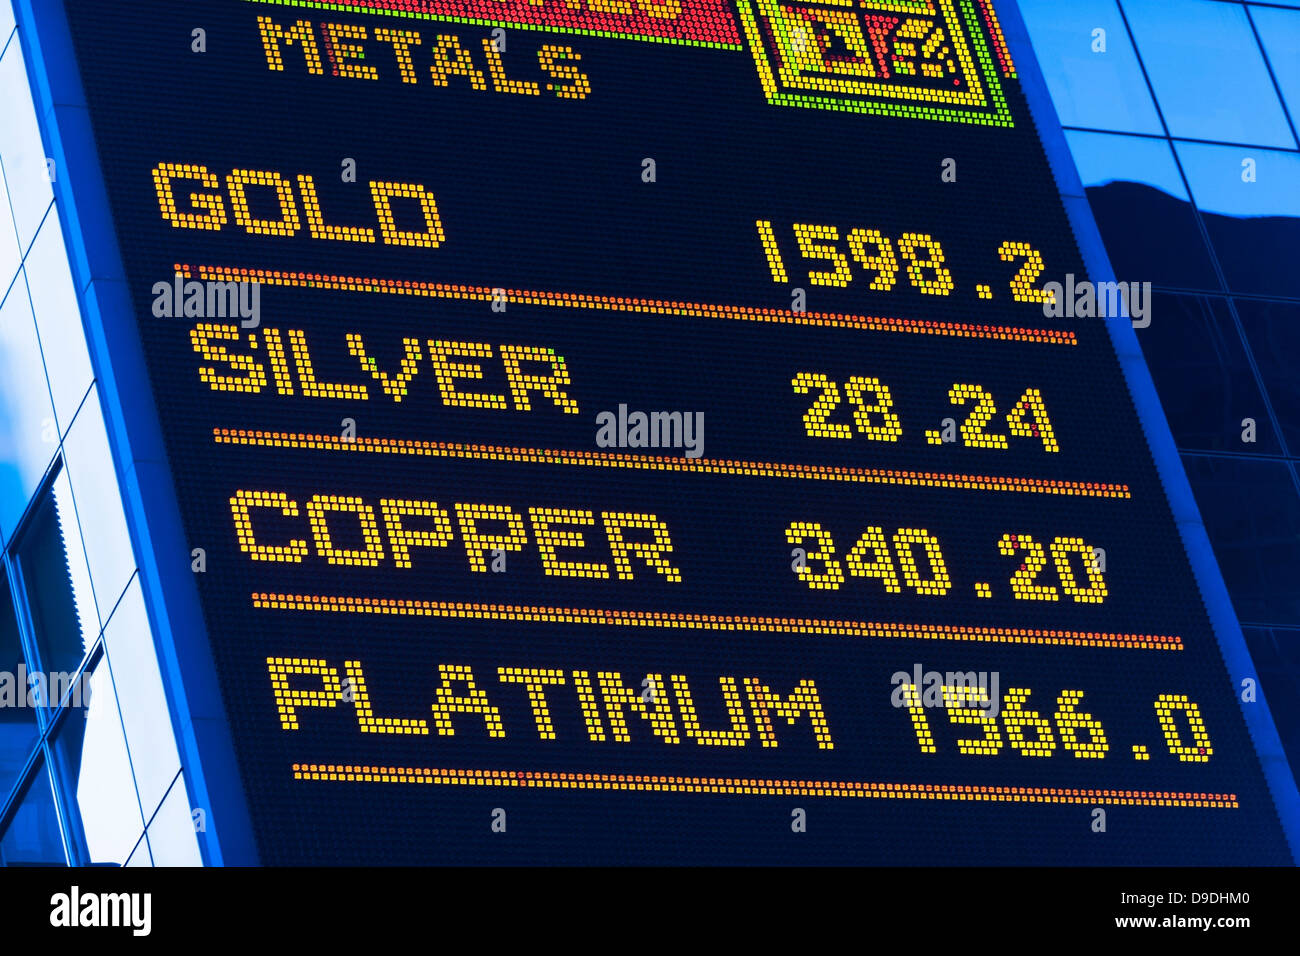 Precious metal prices, digital display - Stock Image